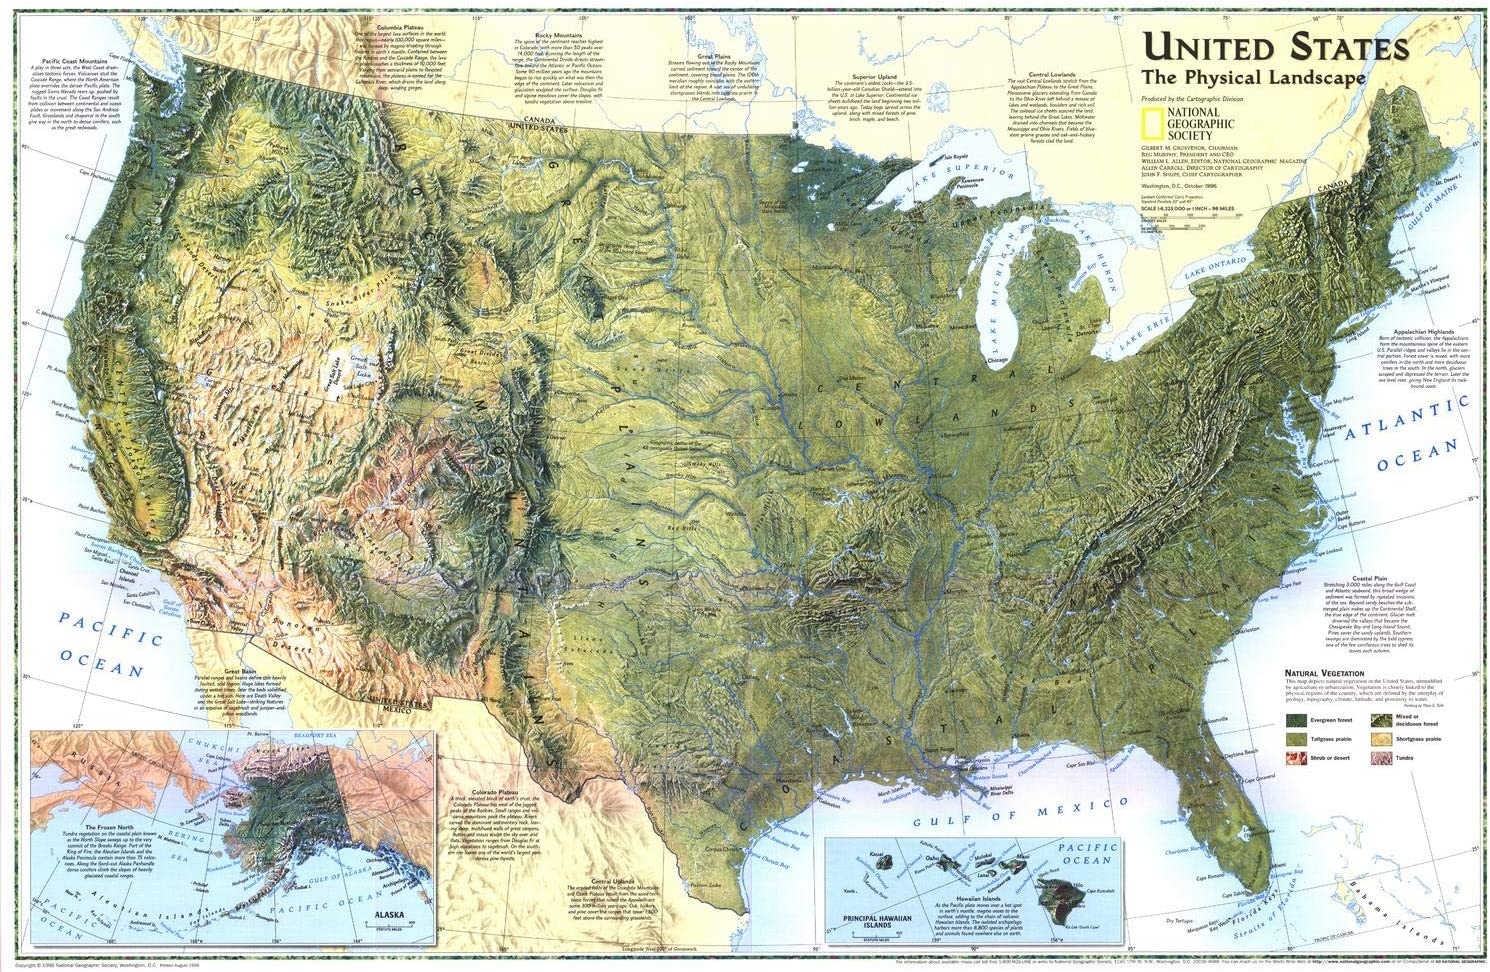 National Geographic: United States Sale price half 1996 The Landscape Physical